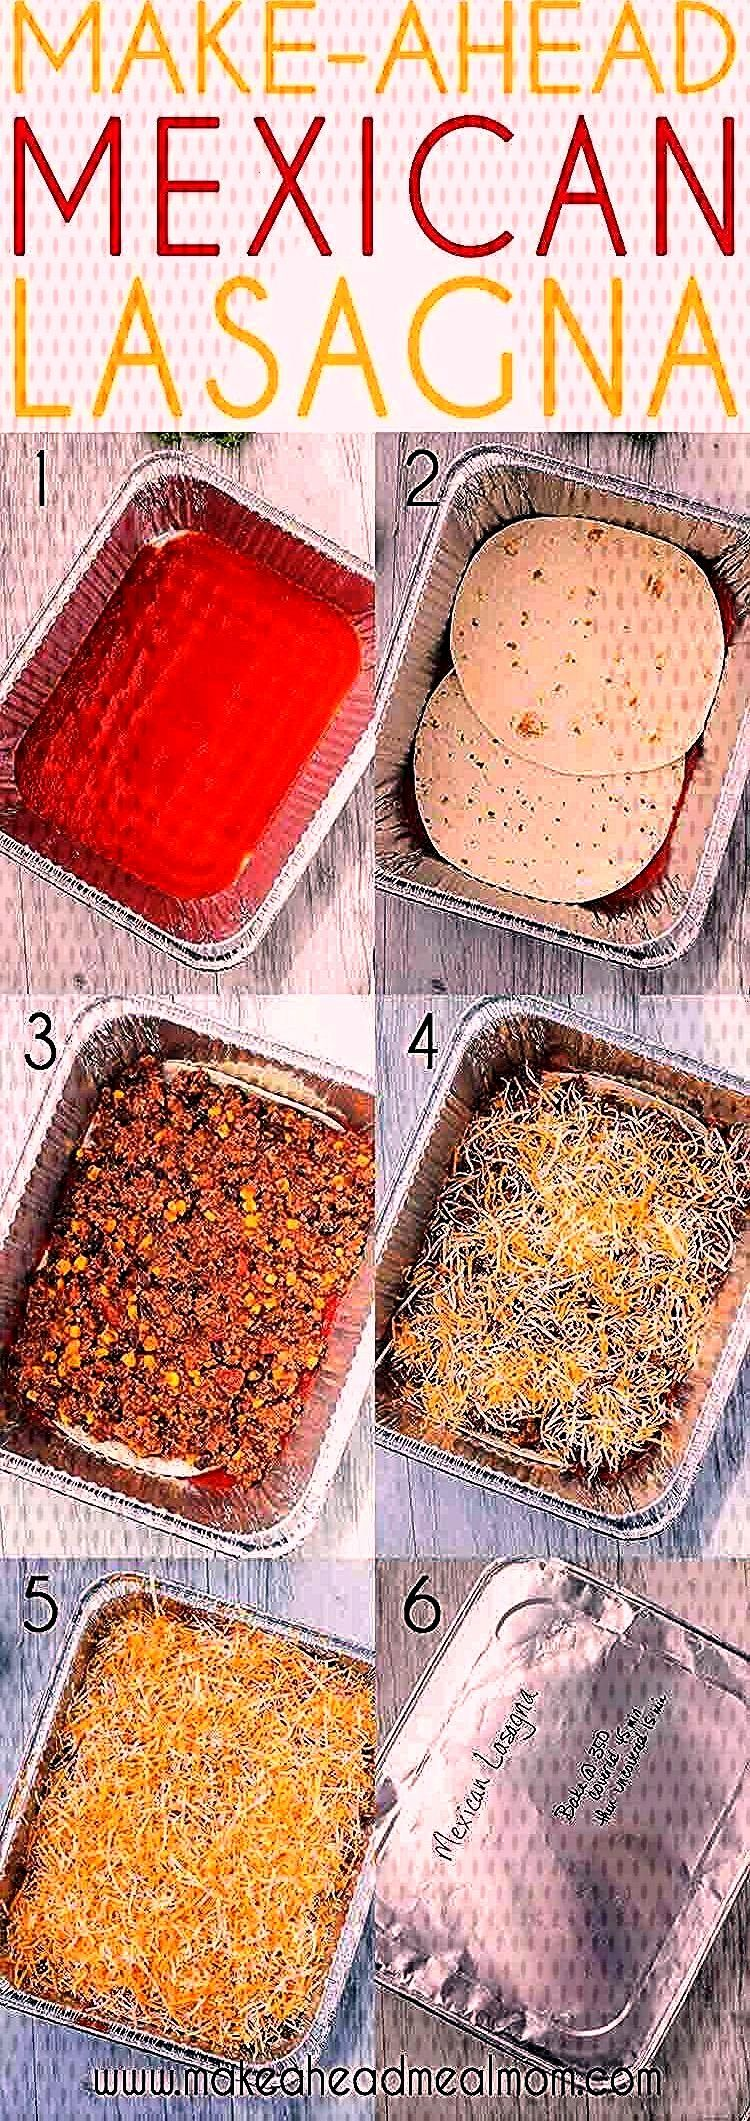 Make-Ahead Mexican Lasagna has all of your favorite south-of-the-border flavors in one easy layered